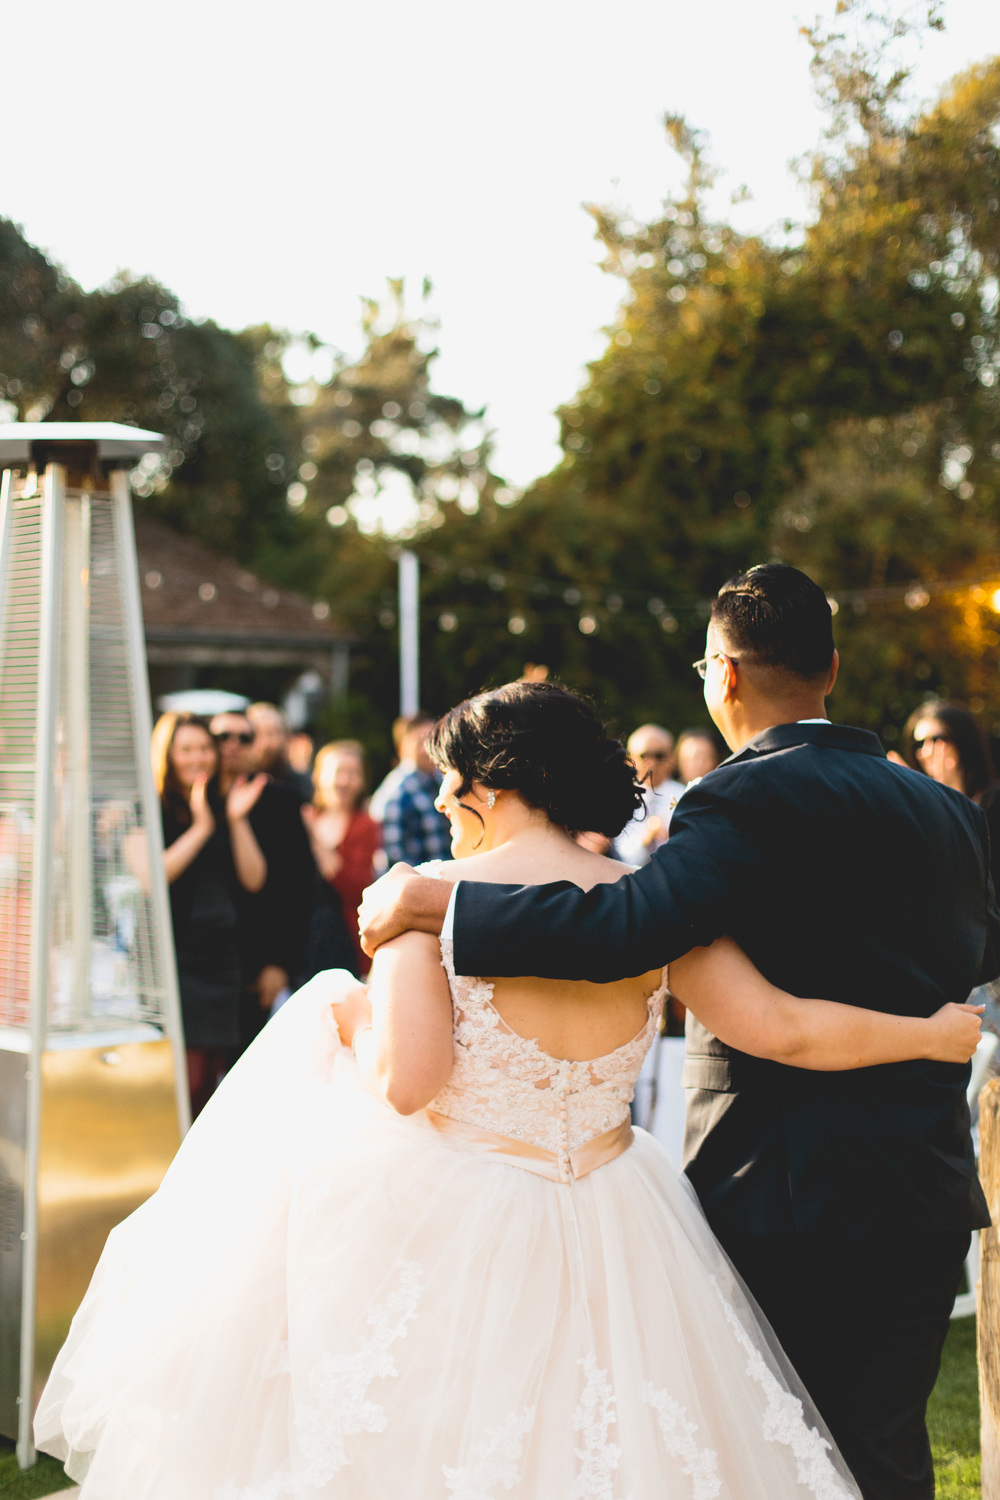 Tiffany + Javier (859 of 1036).jpg